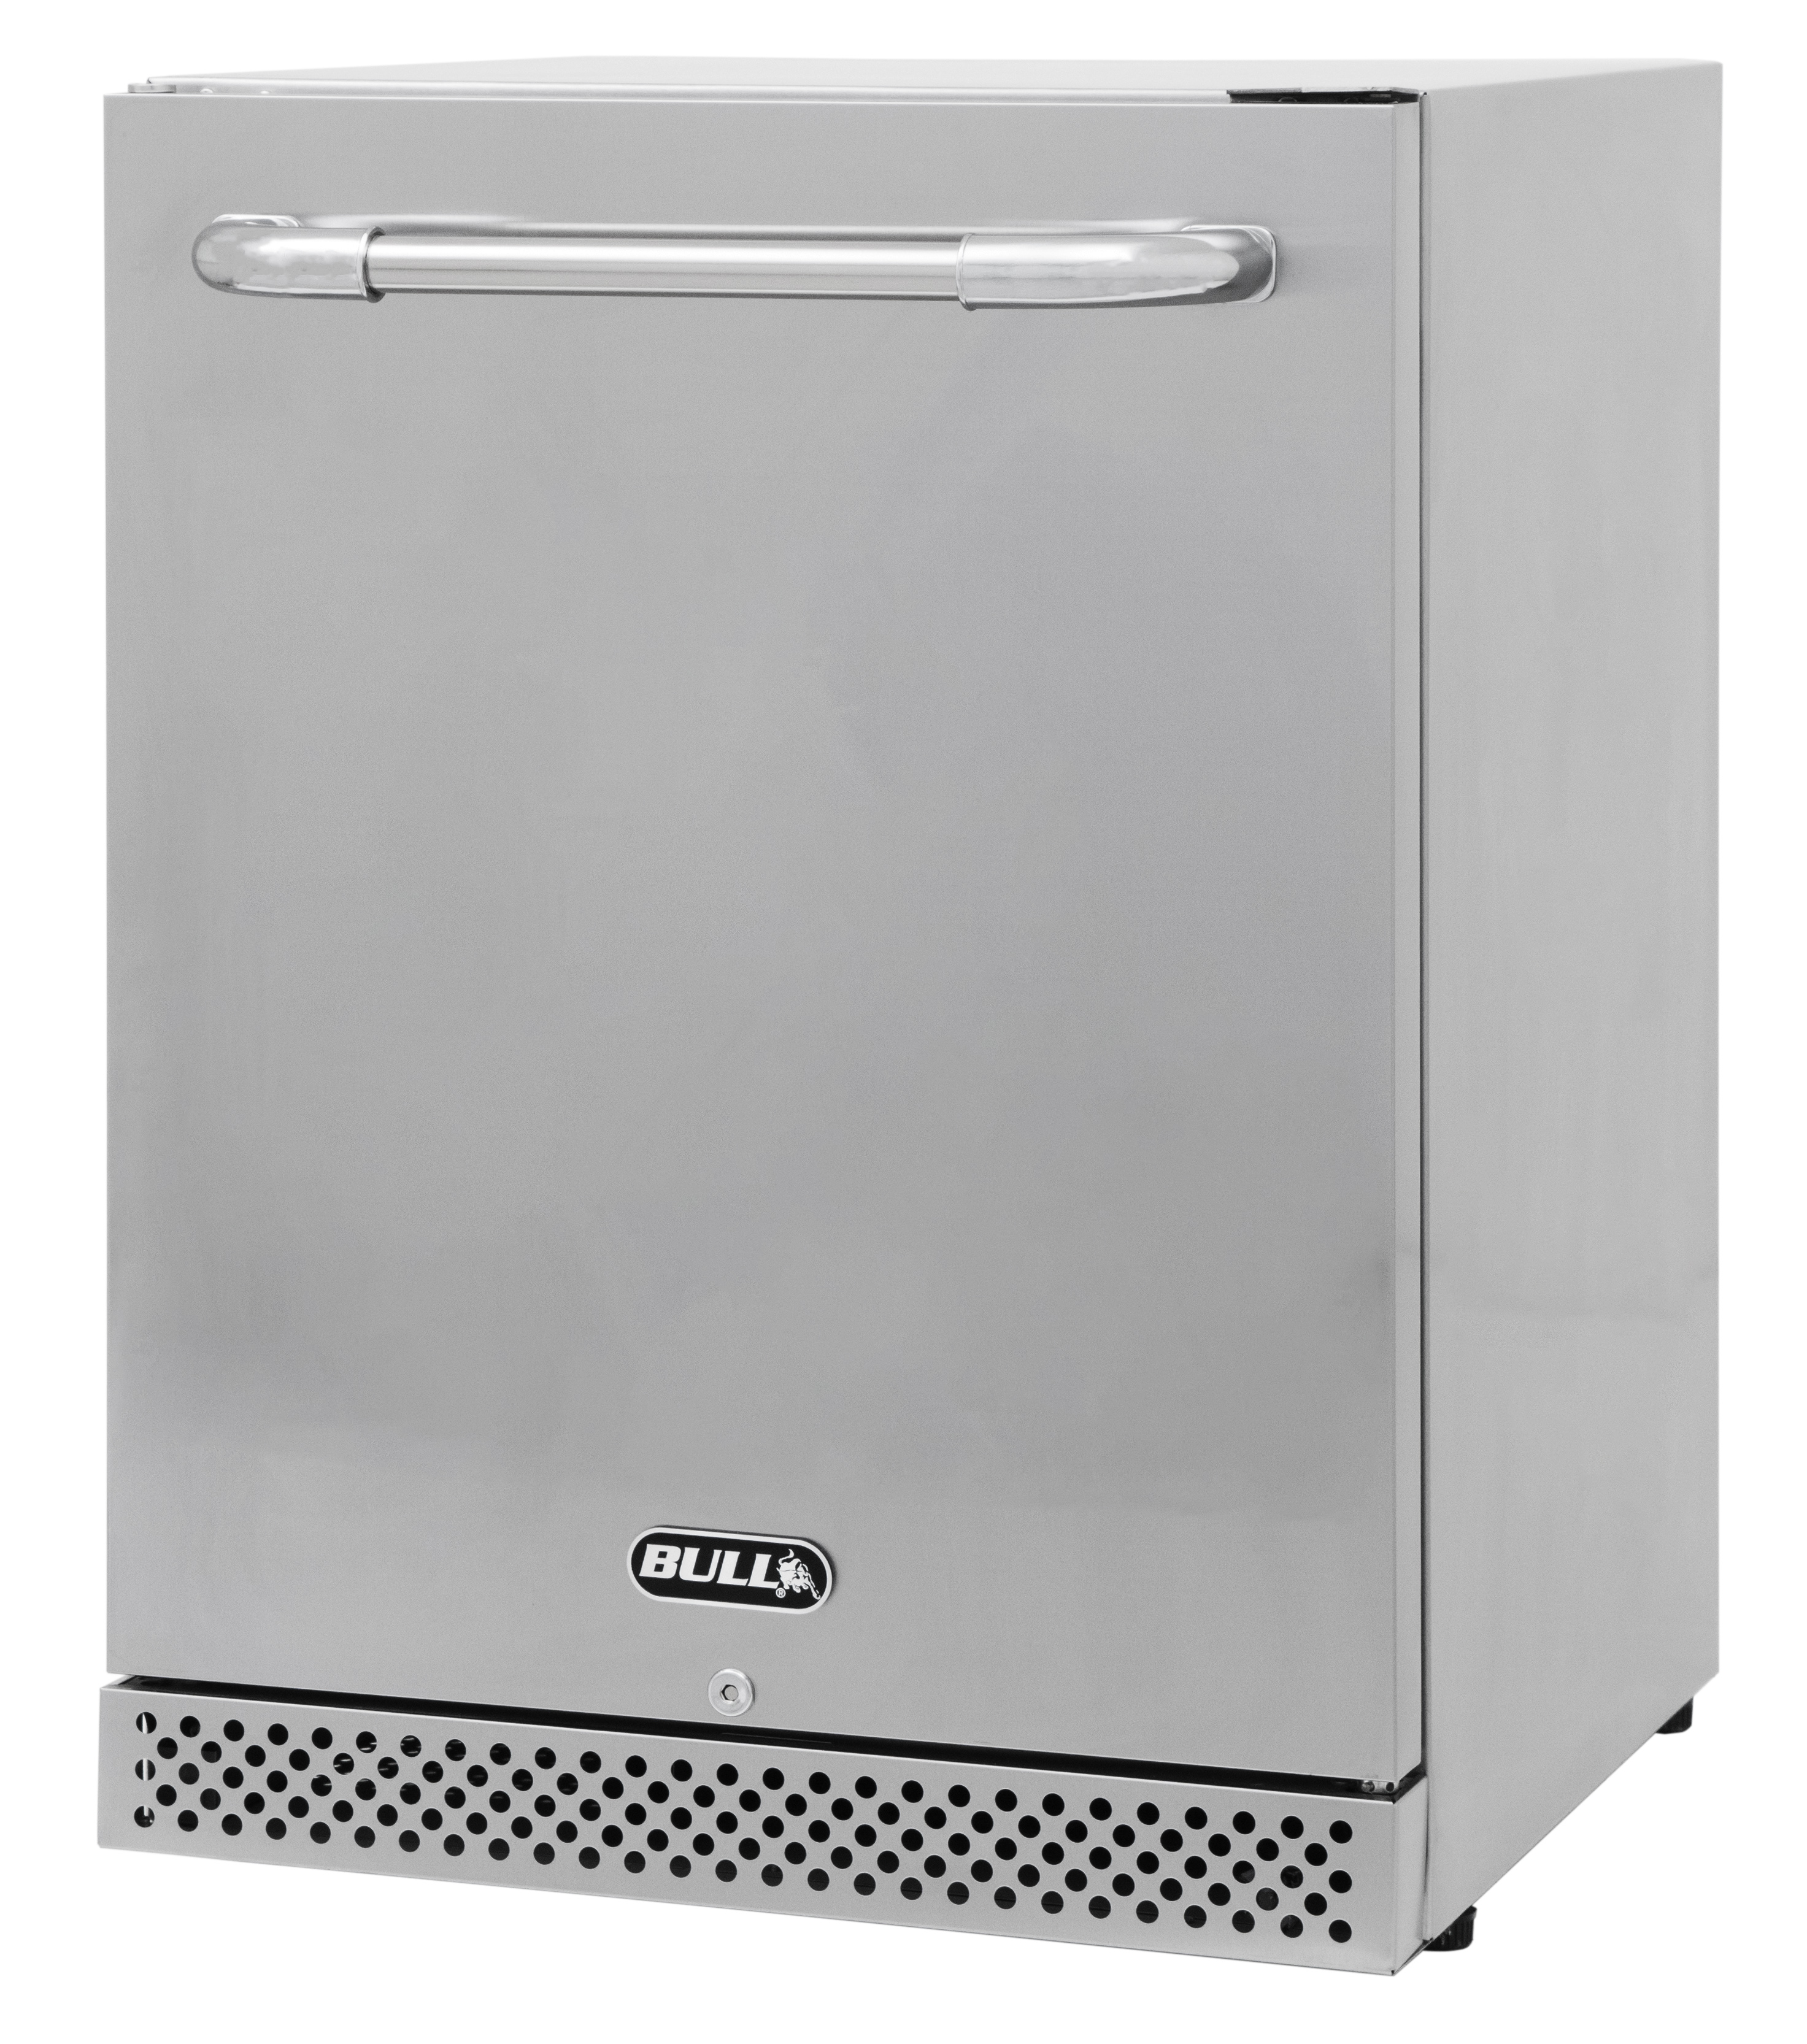 Premium Commercial Outdoor Refrigerator Series ll , BBQ Components ,  europe, Bull europe limited, bull bbq europe